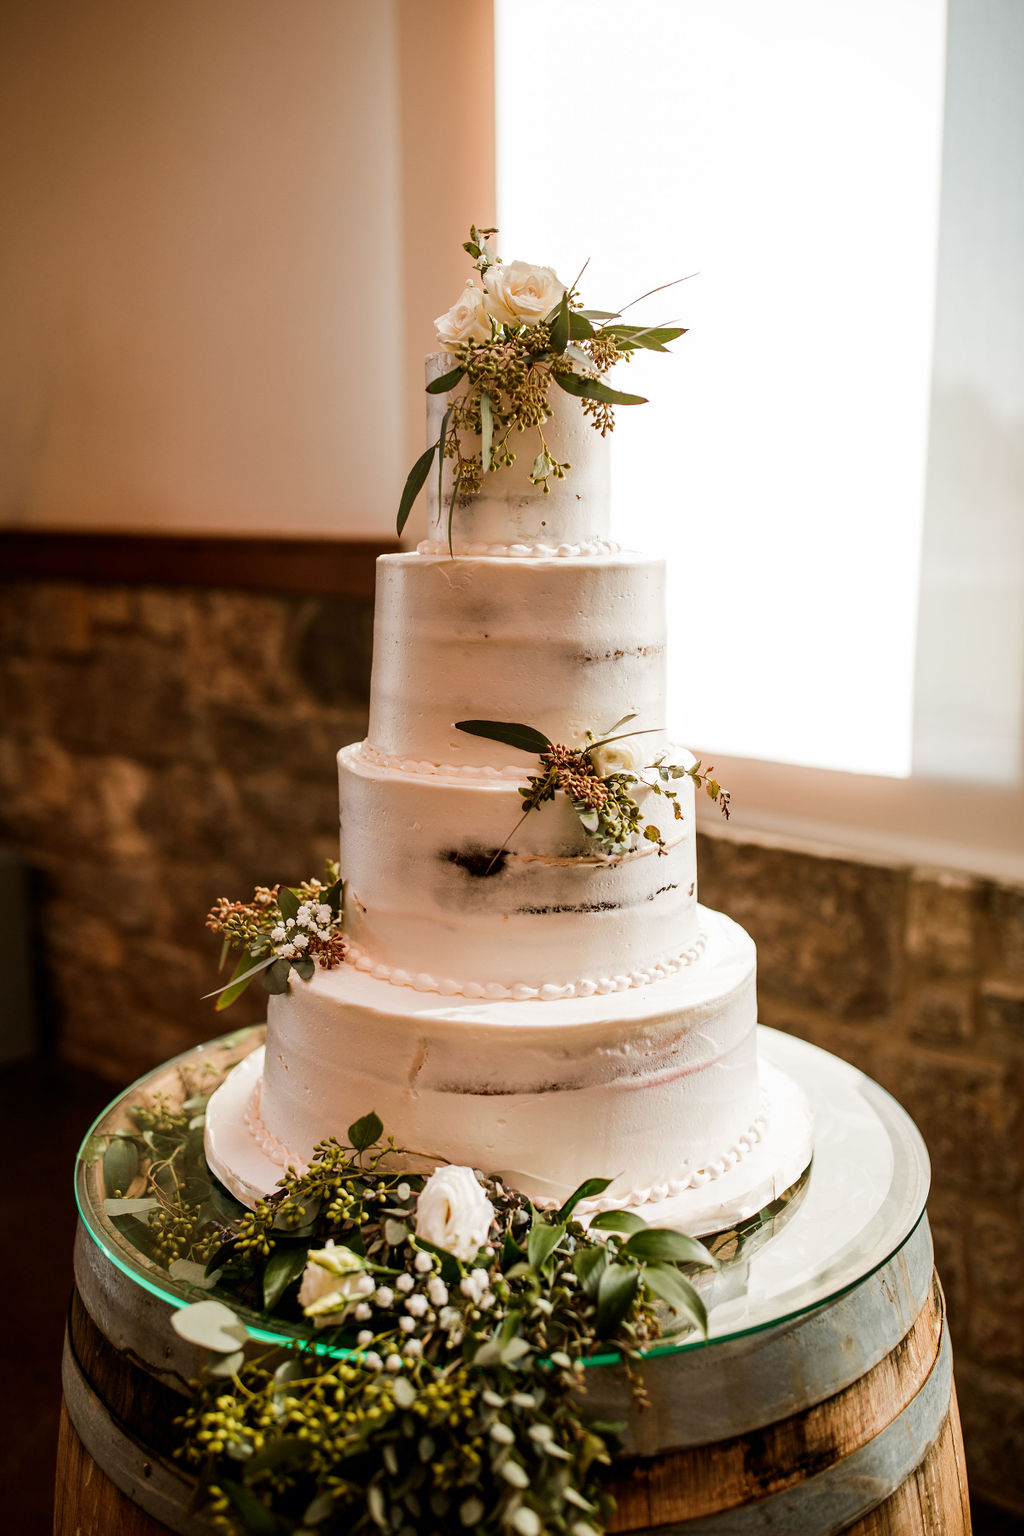 White and greenery wedding cake: Beautiful Graystone Quarry Wedding featured on Nashville Bride Guide!